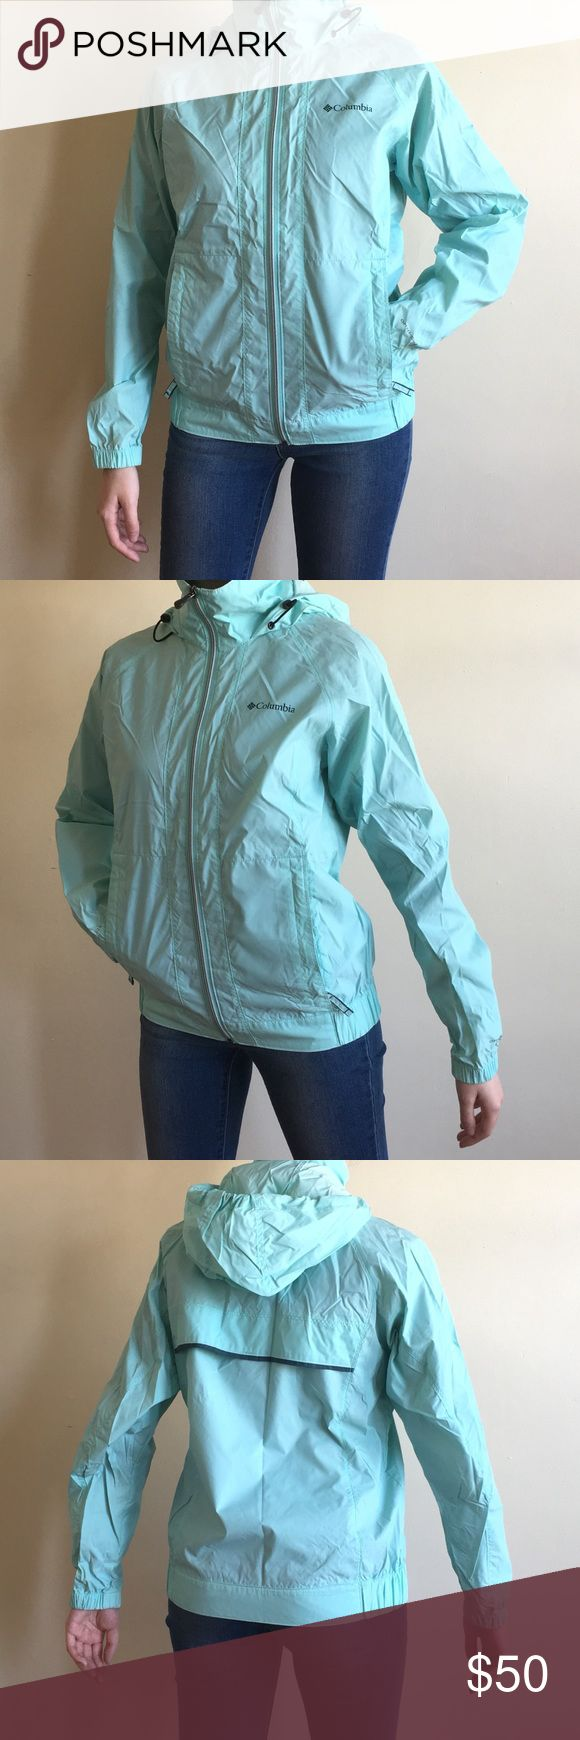 "Columbia Omni-Shield Aqua Packable Rain Jacket Columbia Sportswear Company Omni-Shield dark cyan aqua blue packable rain jacket. Great quality rain jacket. Thin & lightweight. Full zip. Zippered pockets. Ventilated mesh open back. Velcro behind the collar & hood so it can be folded and packed. Super convenient for throwing in your bag on those unsure rainy days. Womens size XS but can fit up to a size S. No holes but there are several marks. Worn. Used condition   Pit to pit: 18"" Pit to hem…"